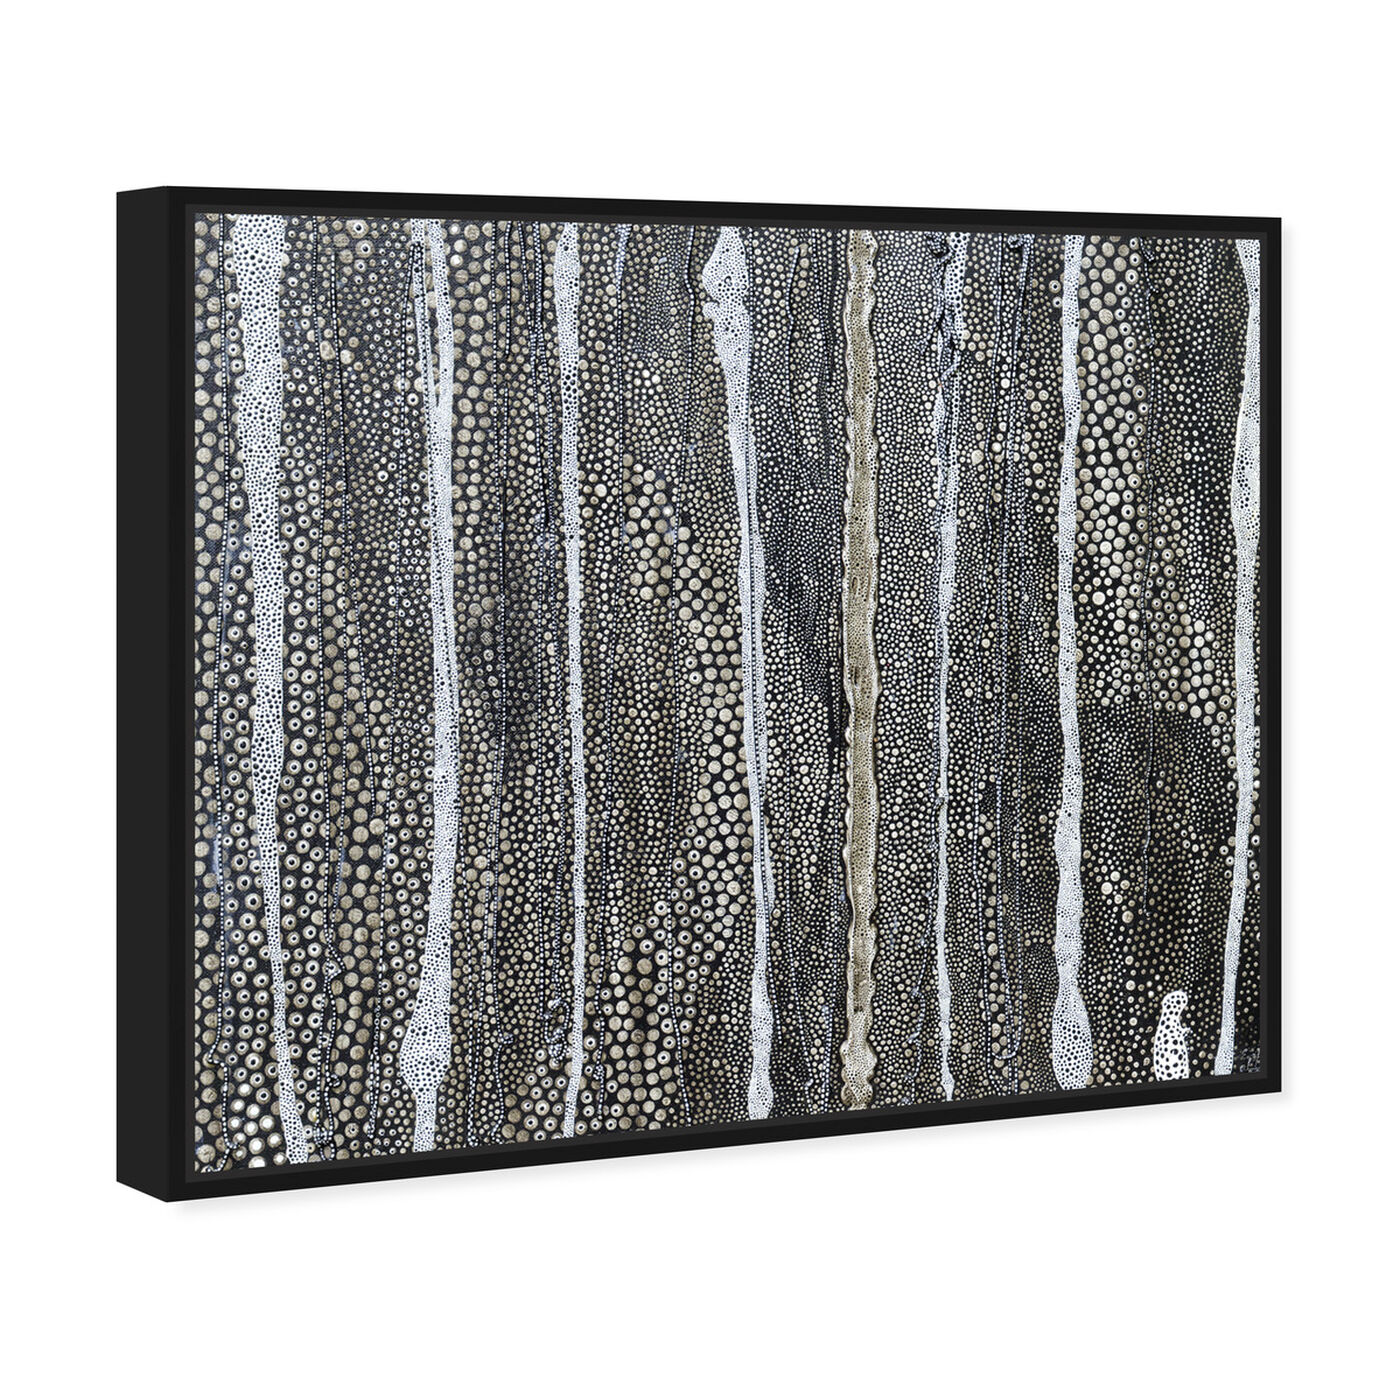 Angled view of Enriqueta Ahrensburg - Black and white featuring abstract and textures art.